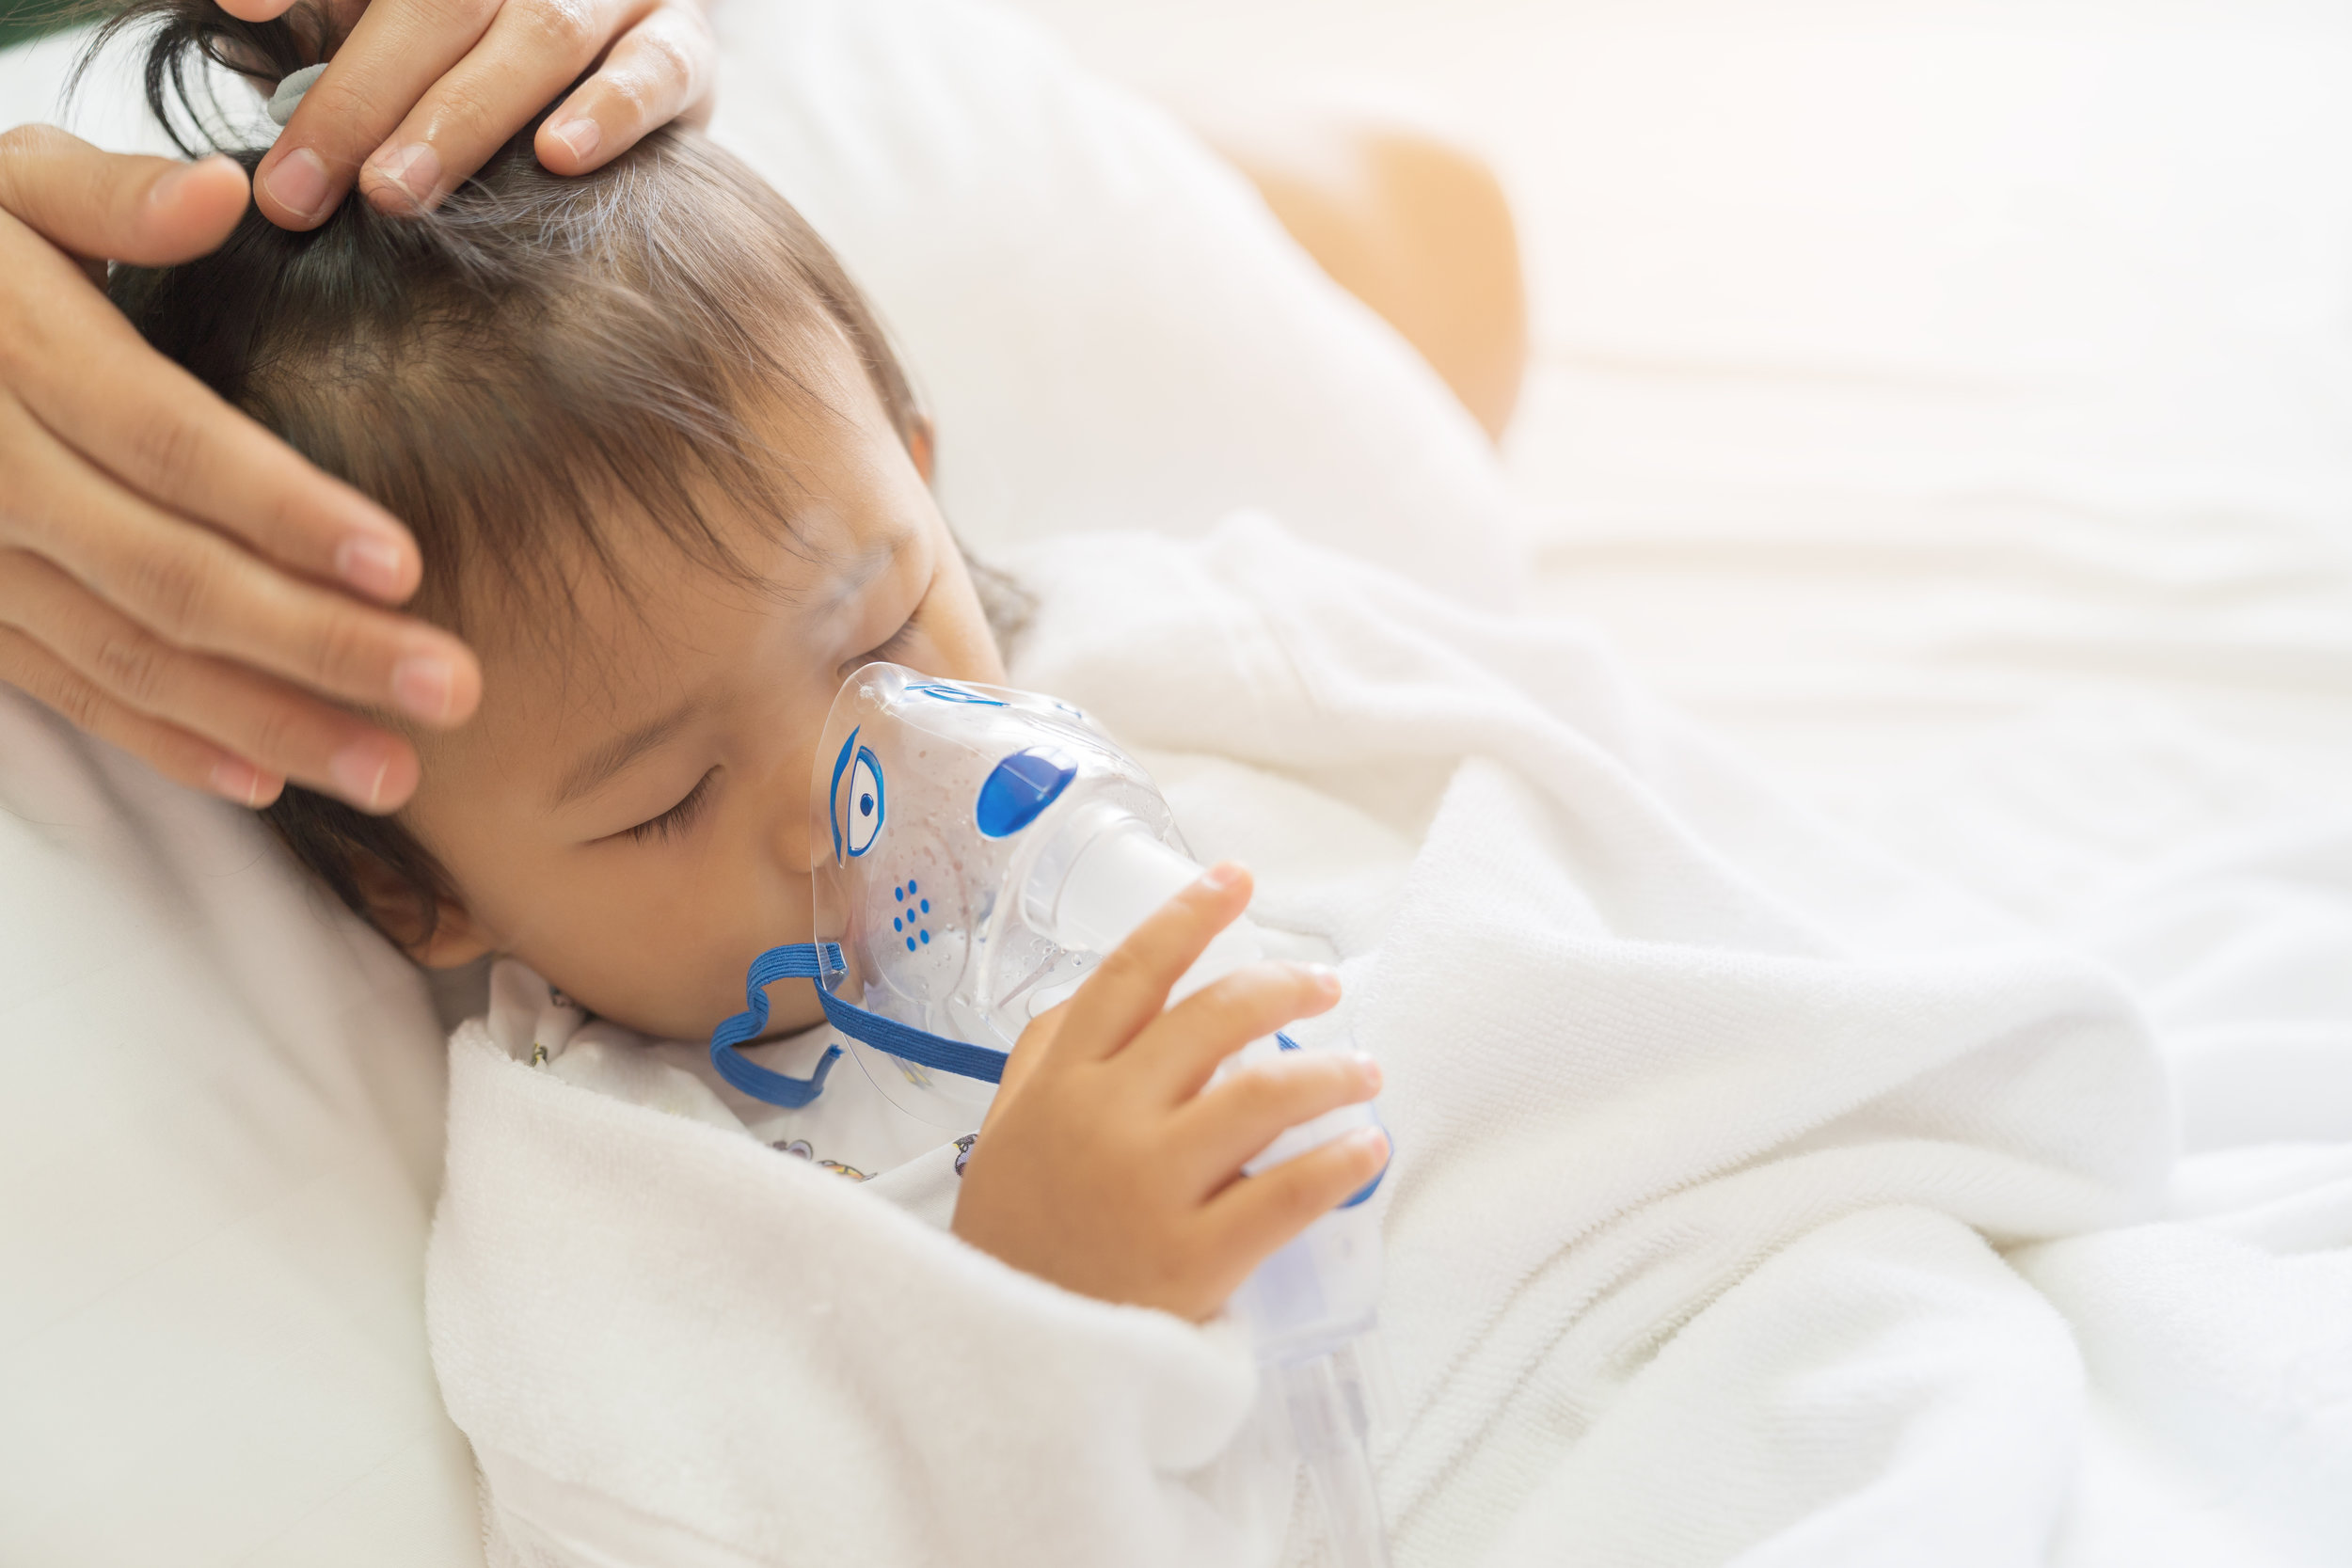 Nebulizers are an easy way for young children and the elderly to take their respiratory medication.